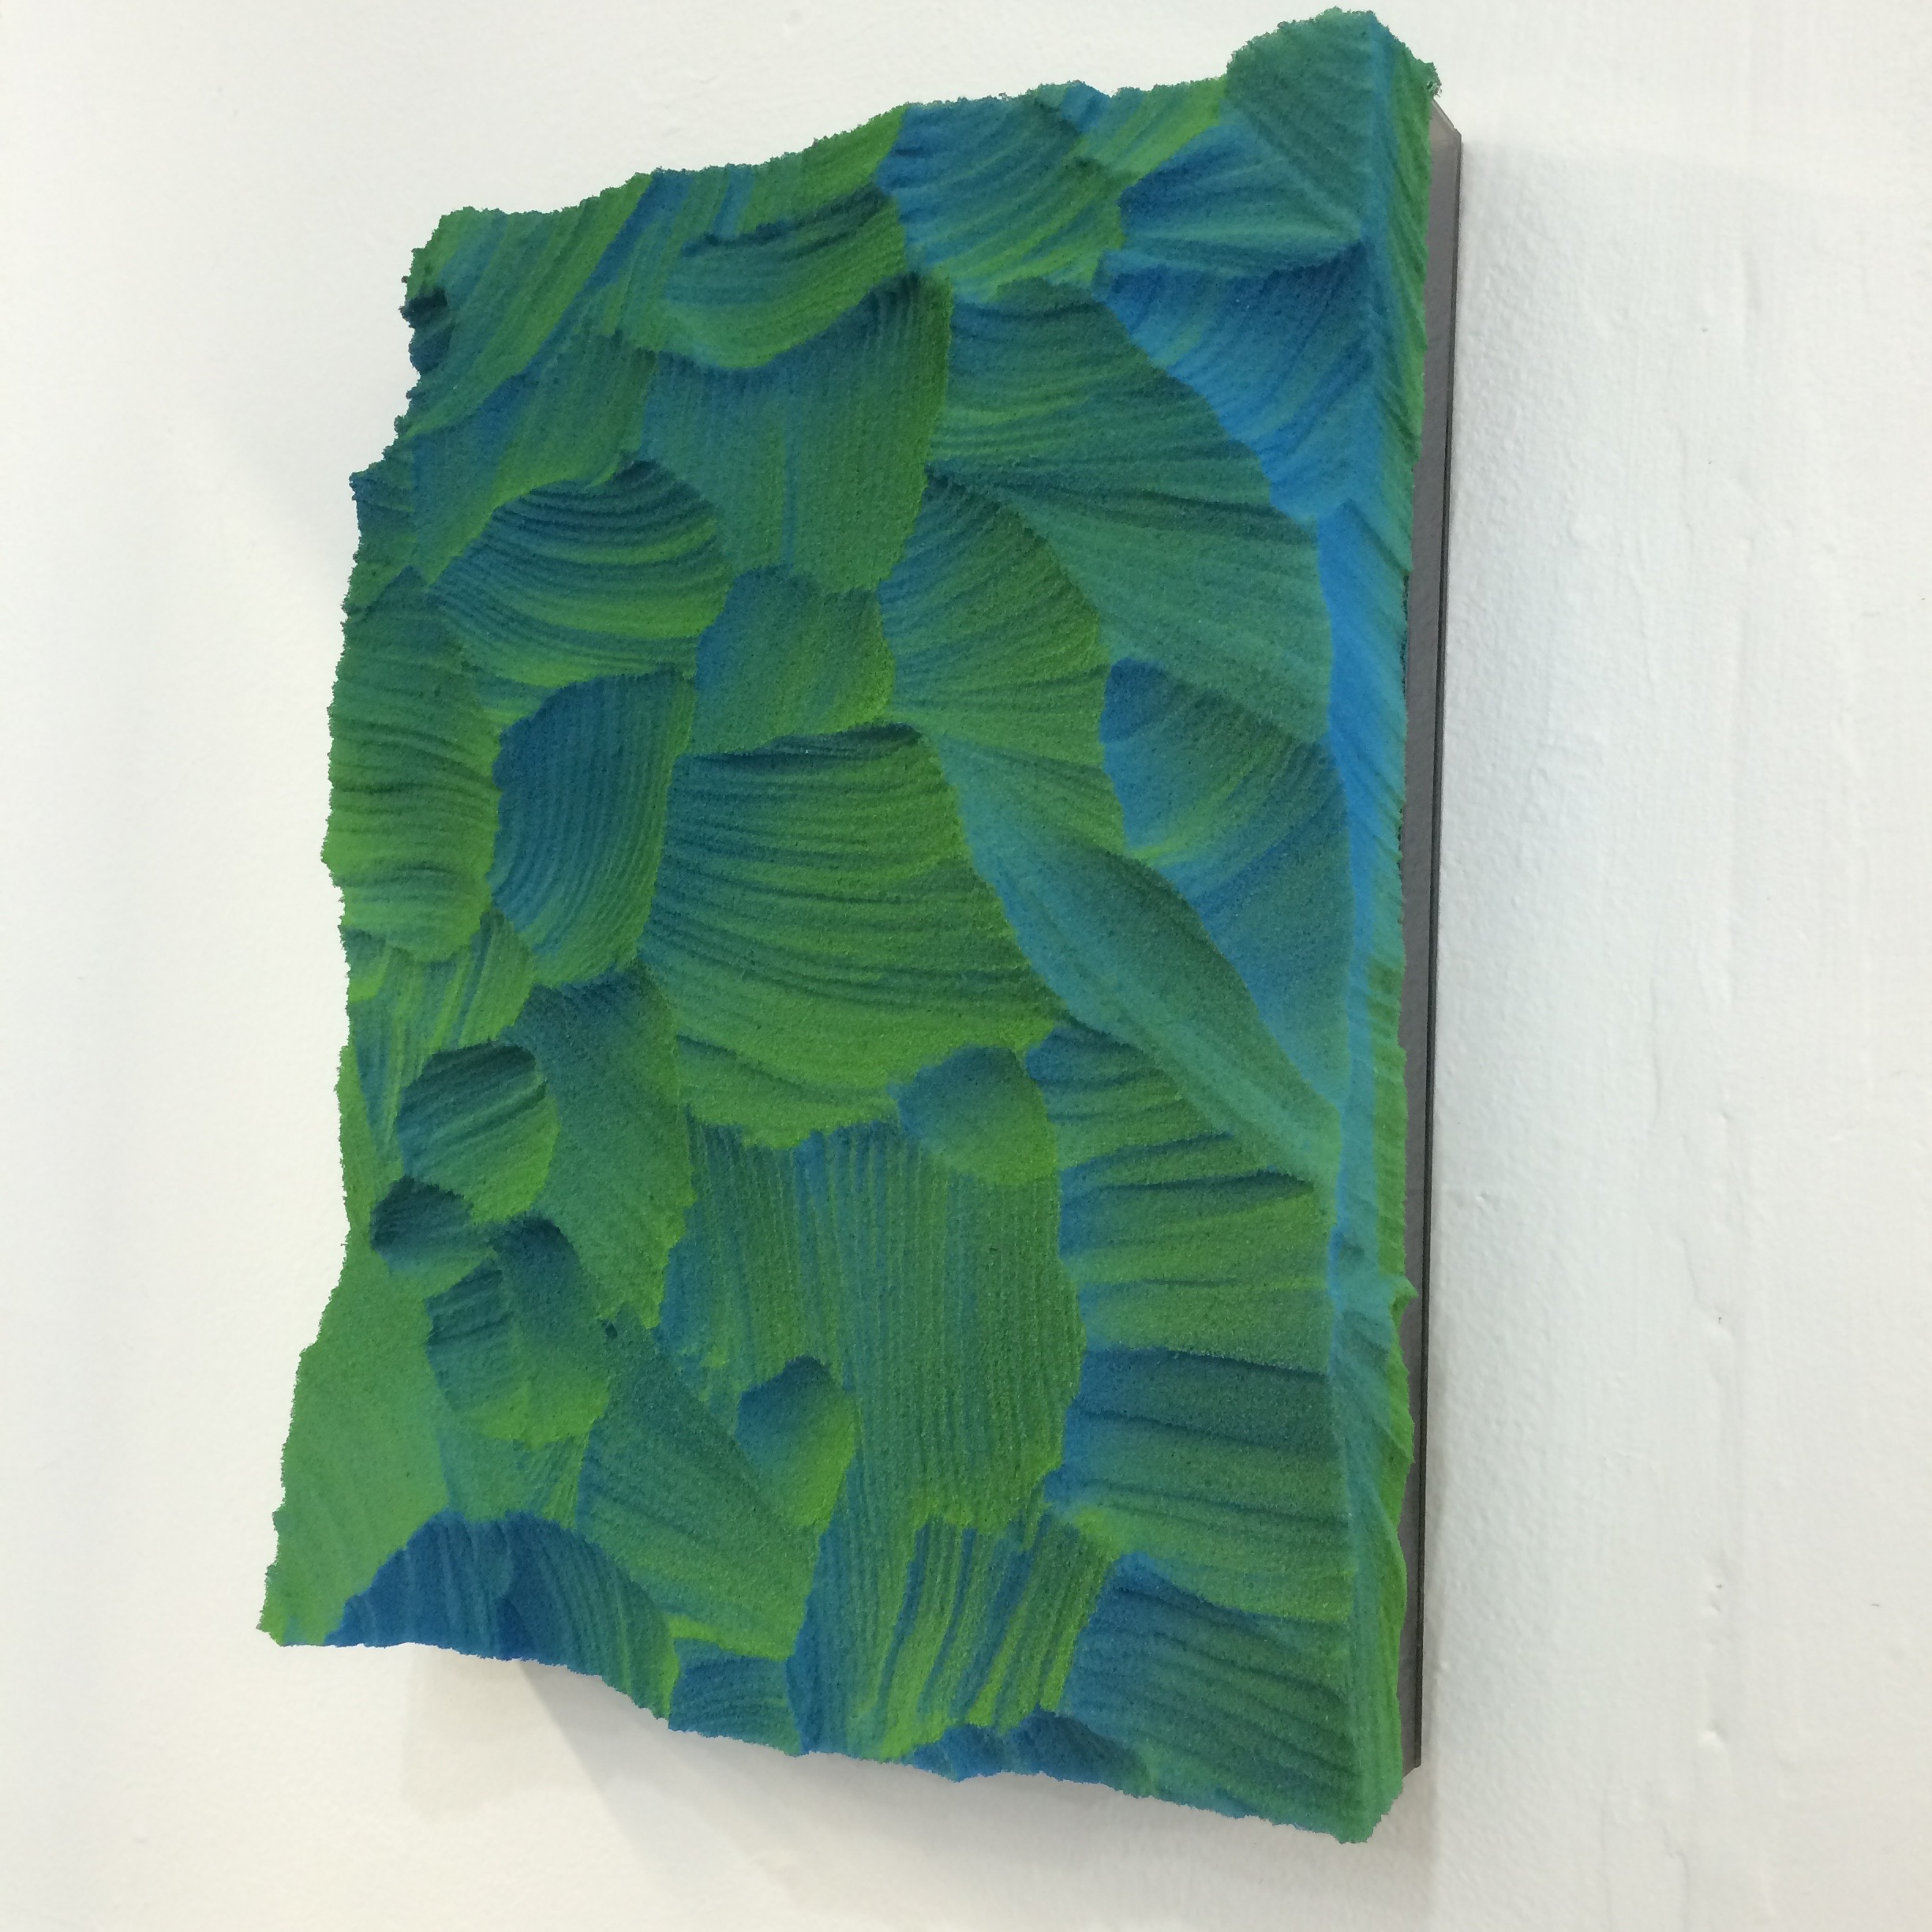 Work by Zachary Buchner, made with memory foam